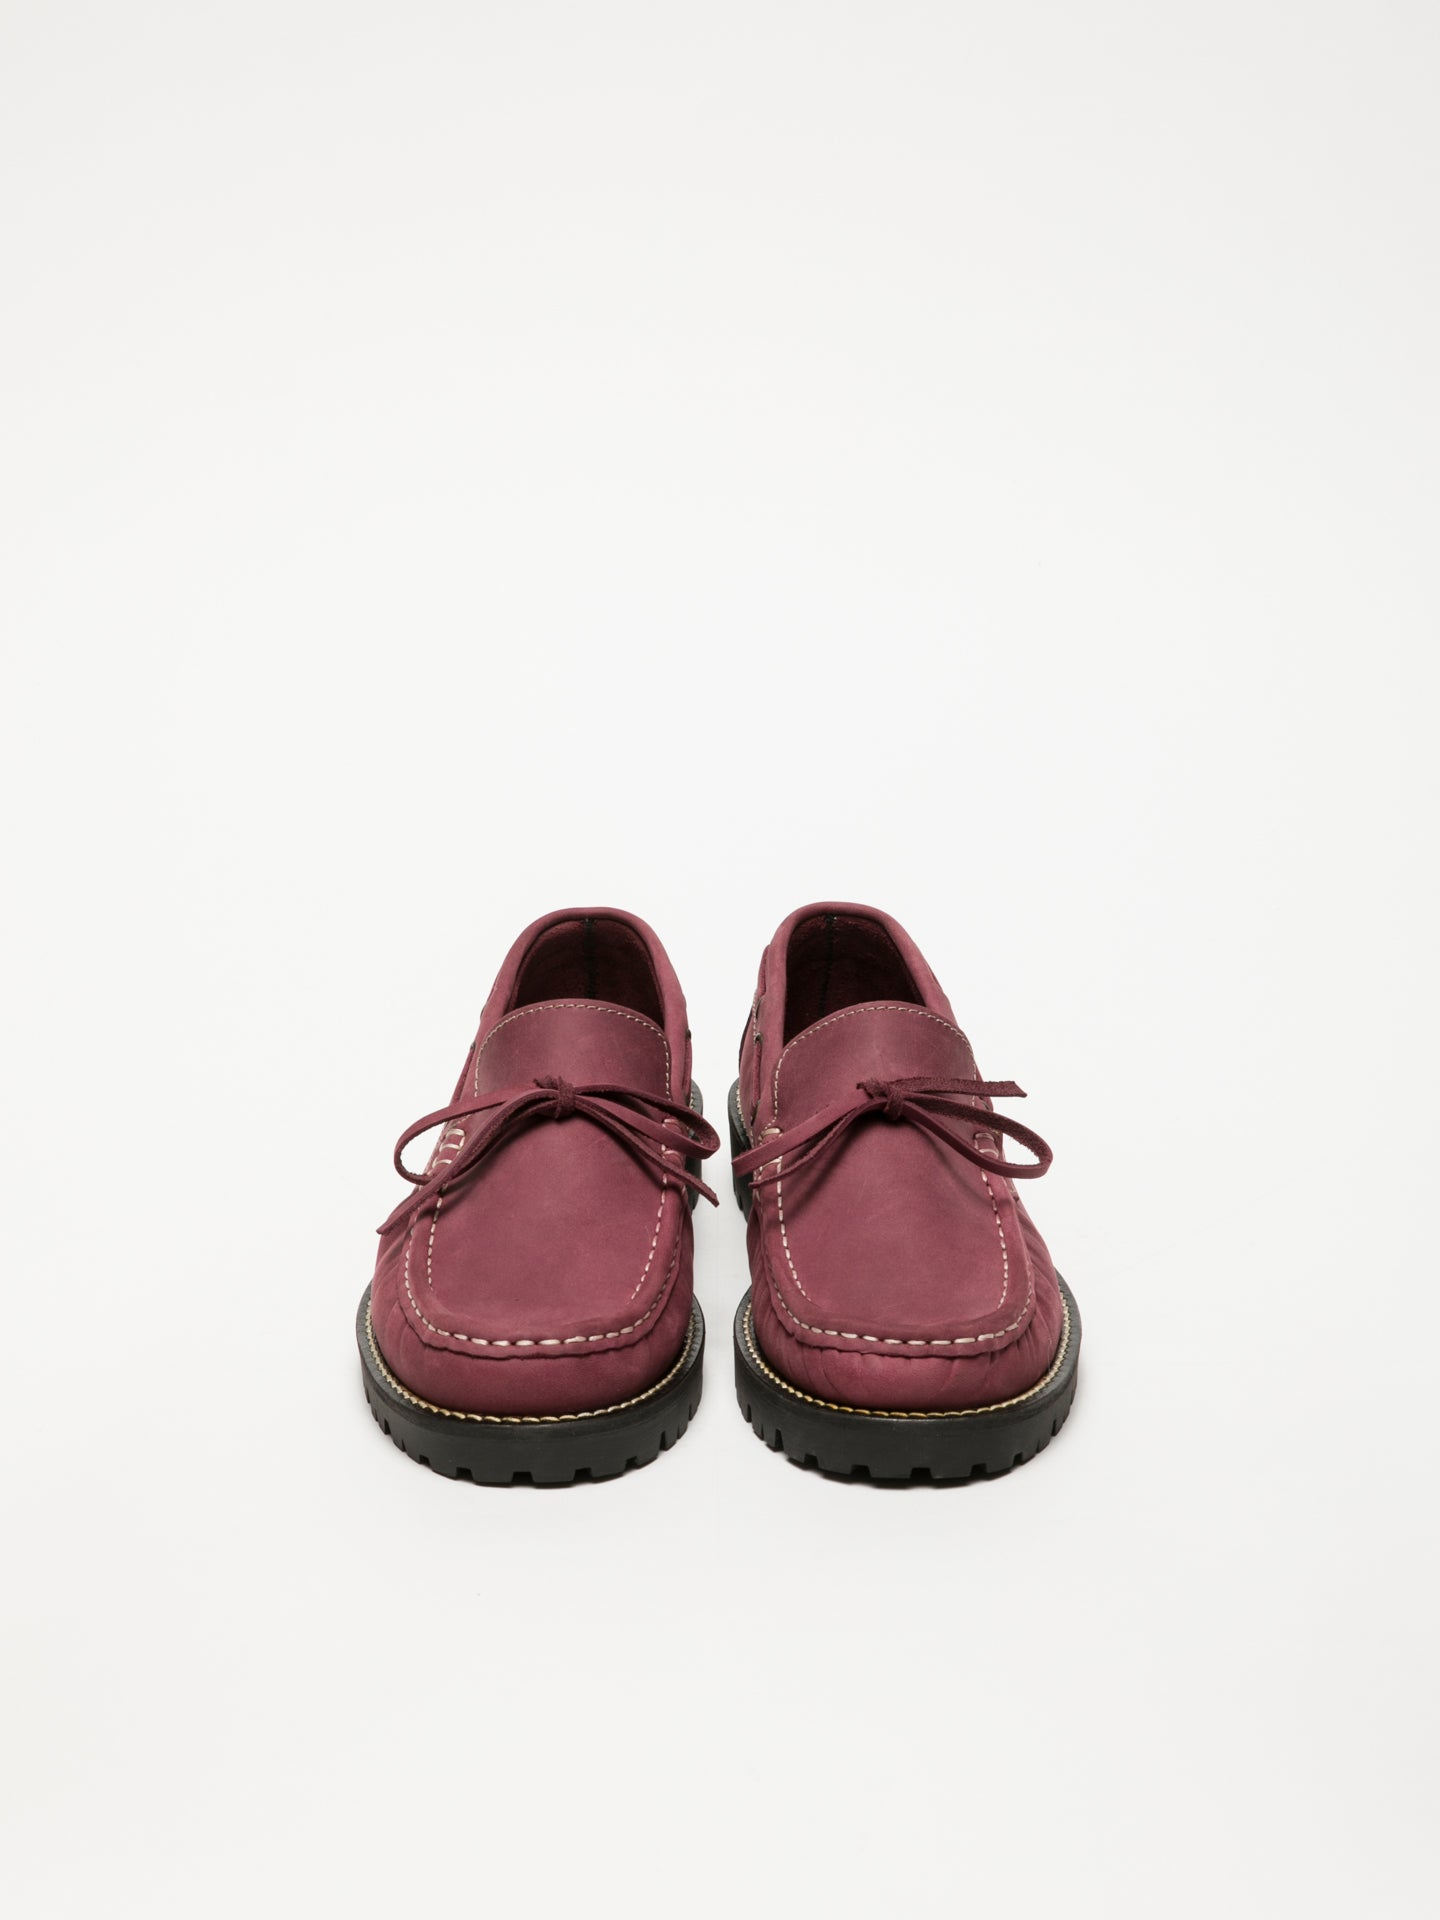 Sotoalto DarkRed Loafers Shoes